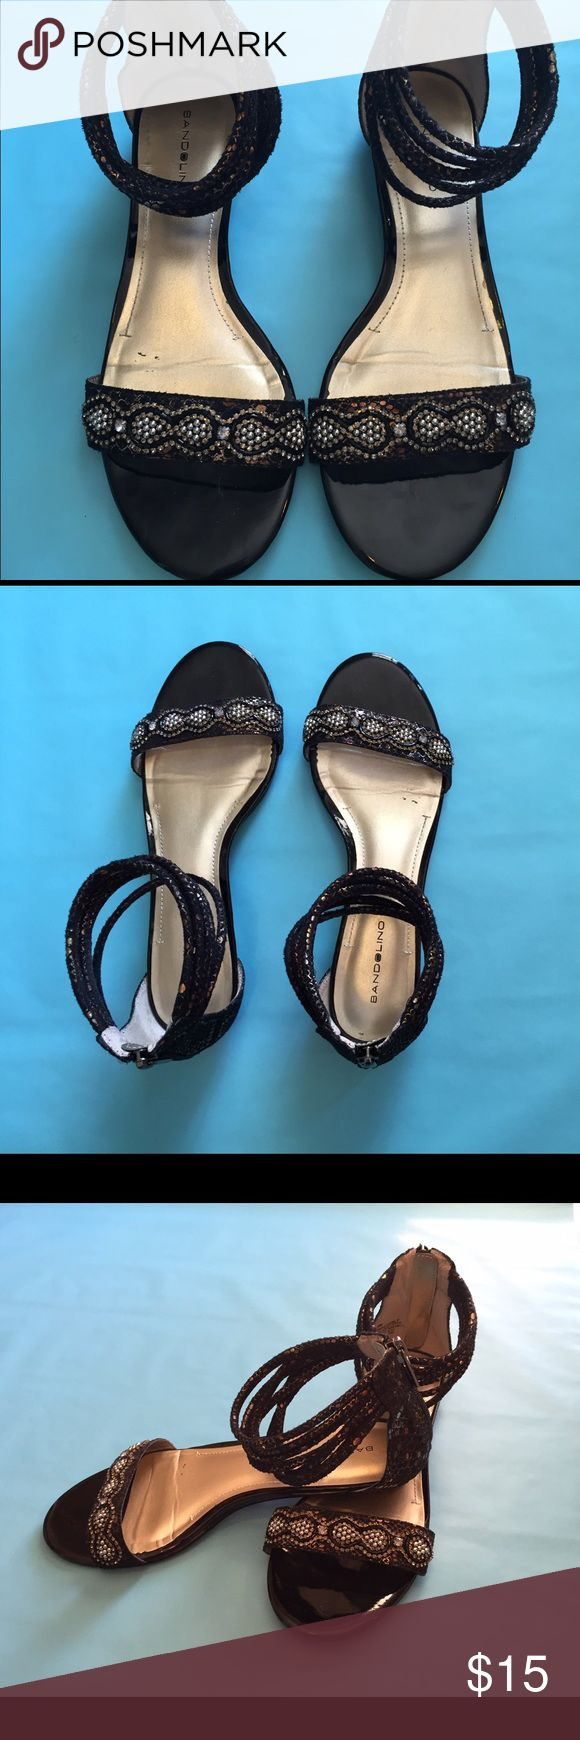 Dressy flat sandal Black sandal zips up the back. Beautiful beading! Only worn once or twice. Nine West Shoes Sandals